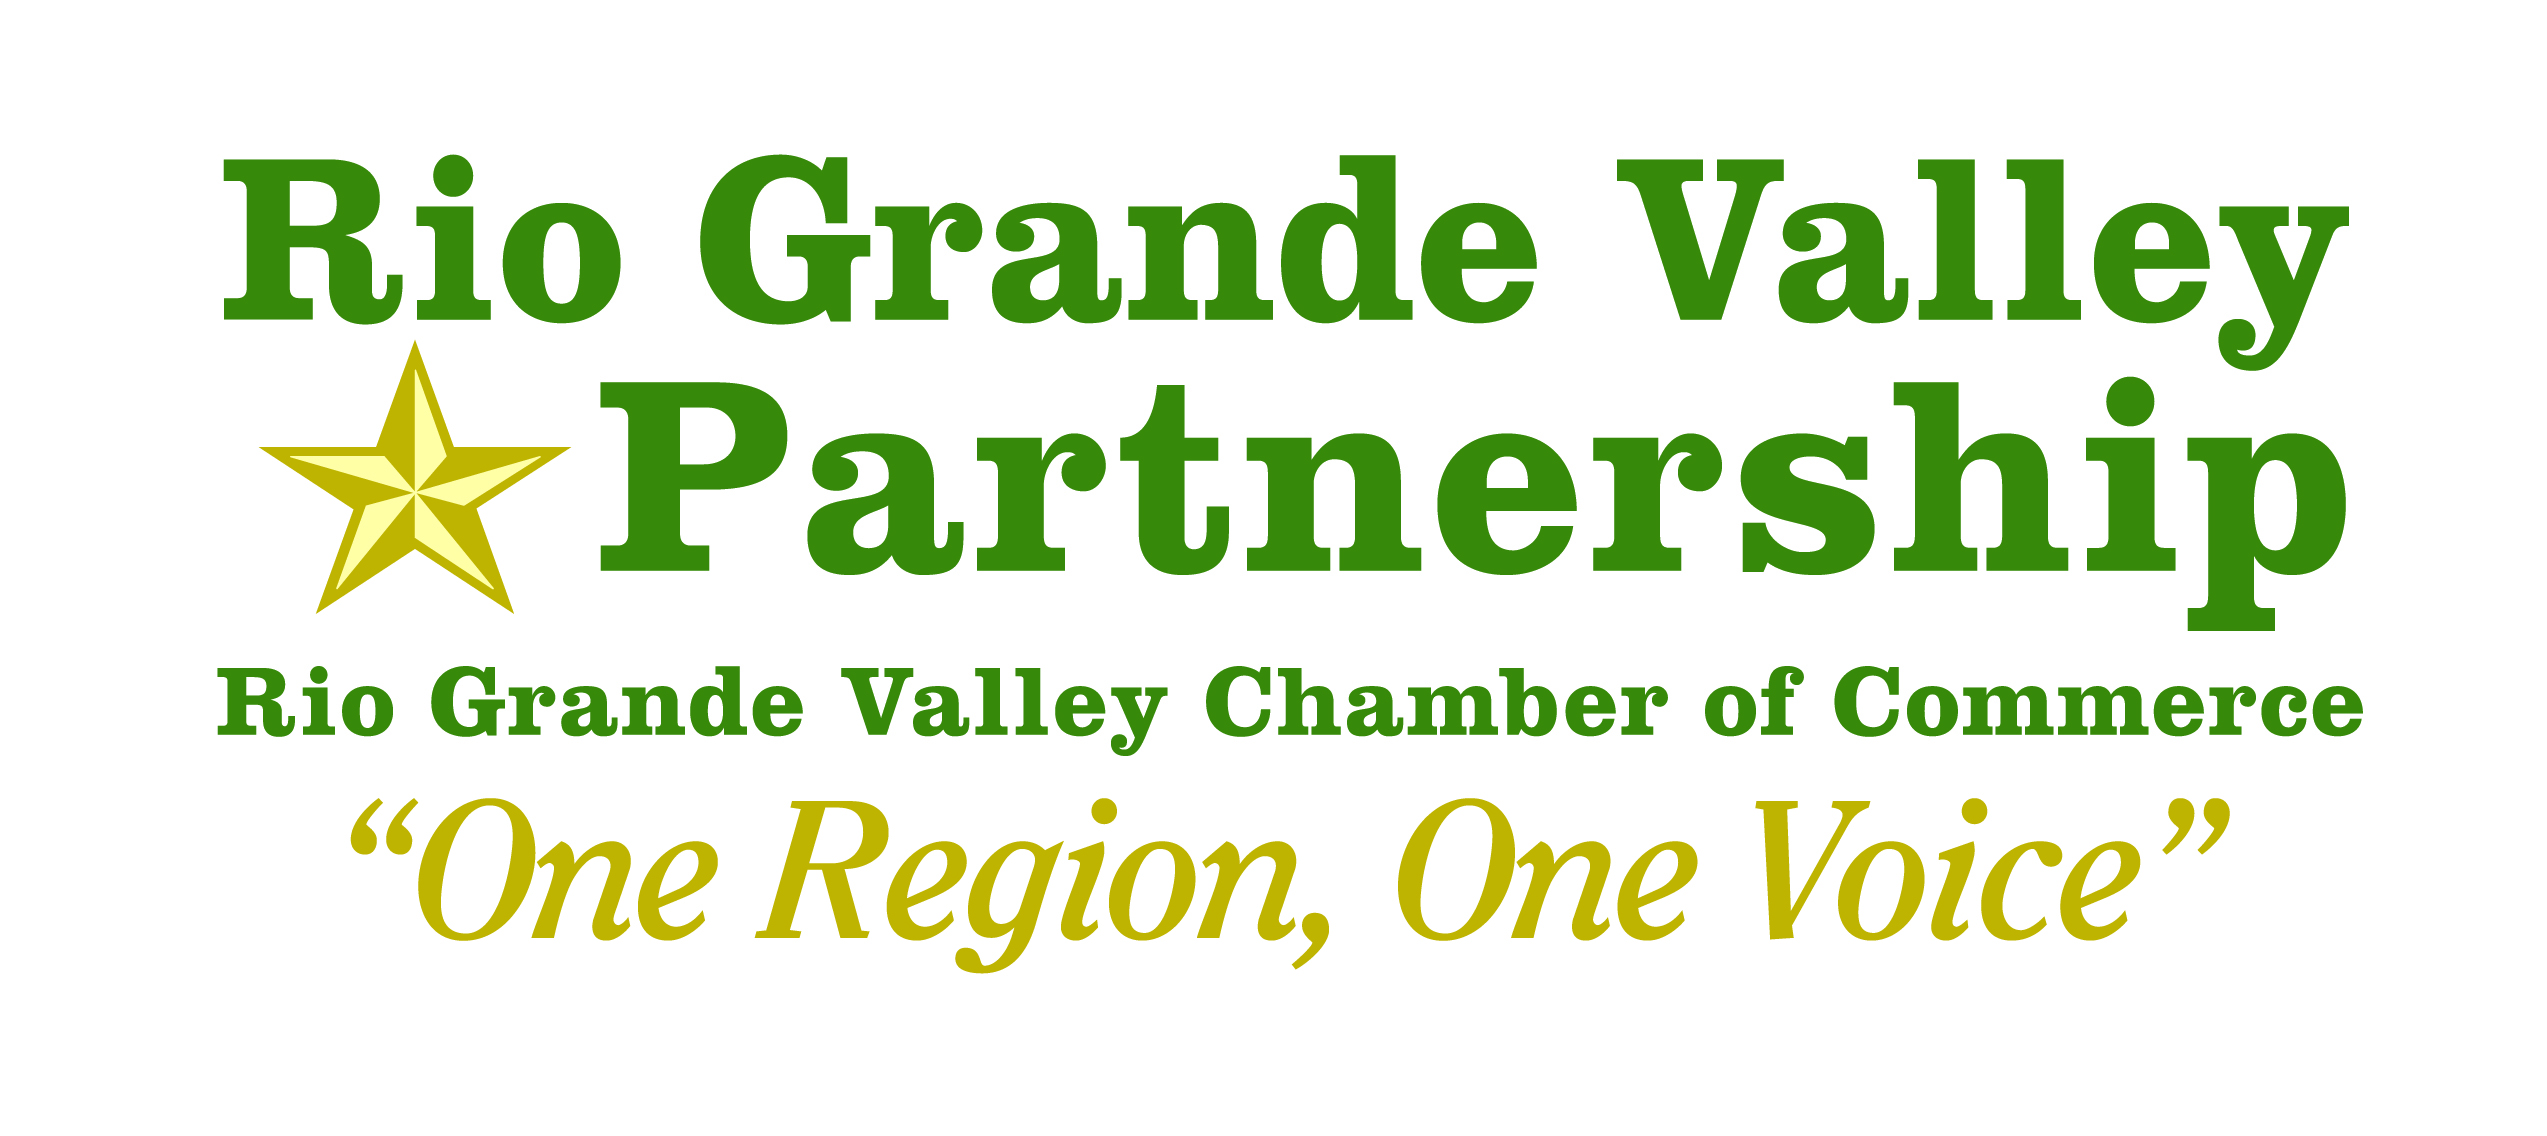 Rio Grande Valley Partnership